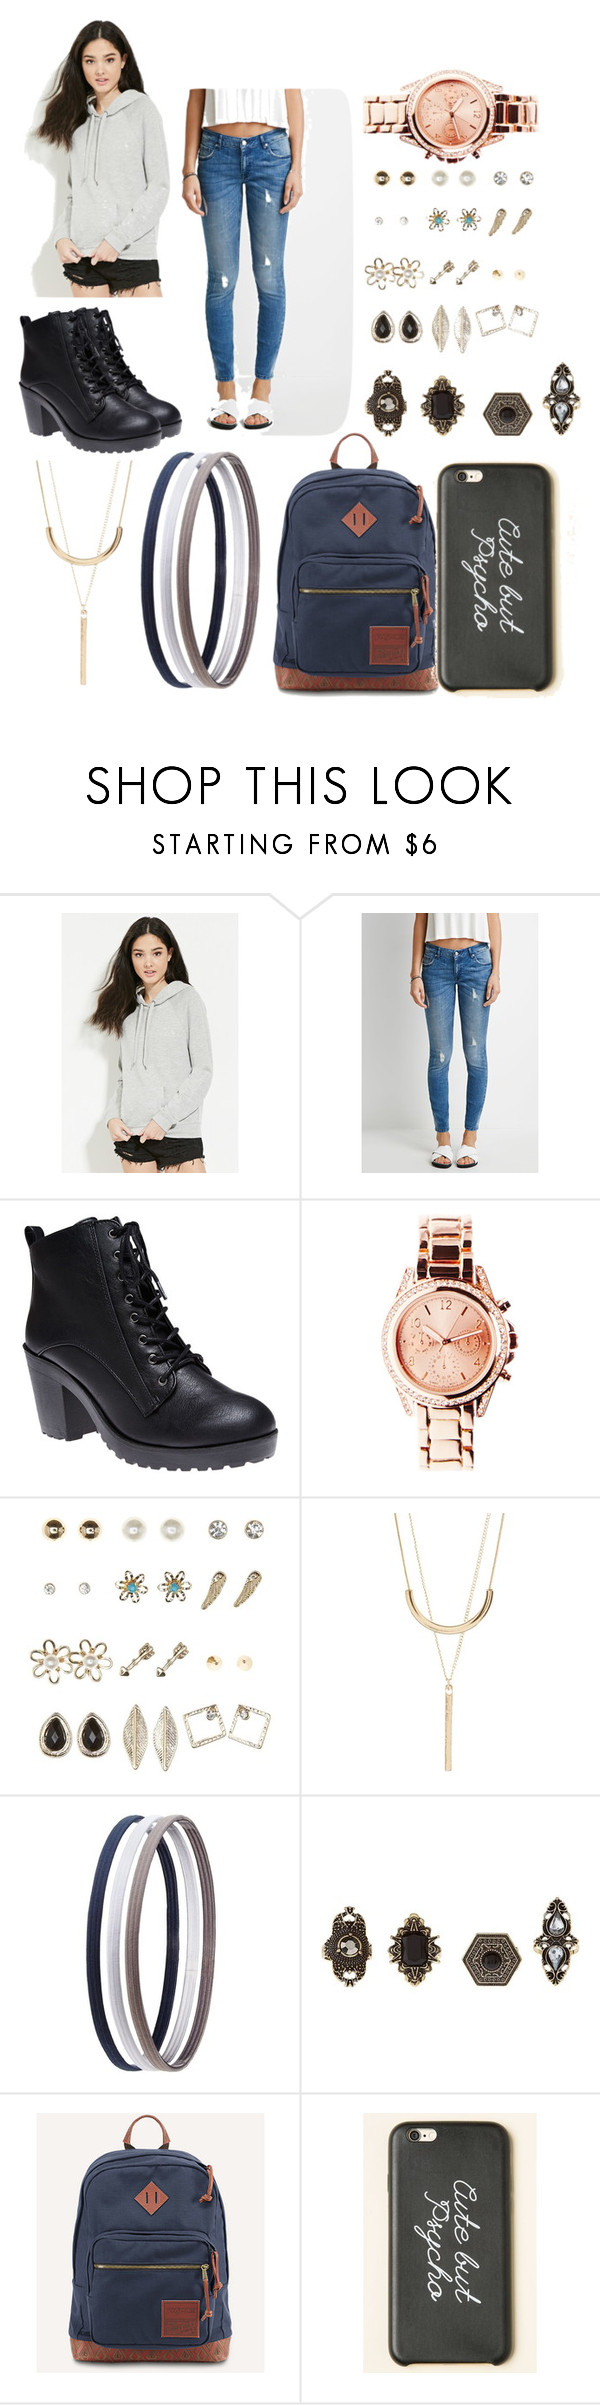 """Untitled #172"" by alliewulf ❤ liked on Polyvore featuring Forever 21, Wet Seal, Charlotte Russe and JanSport"